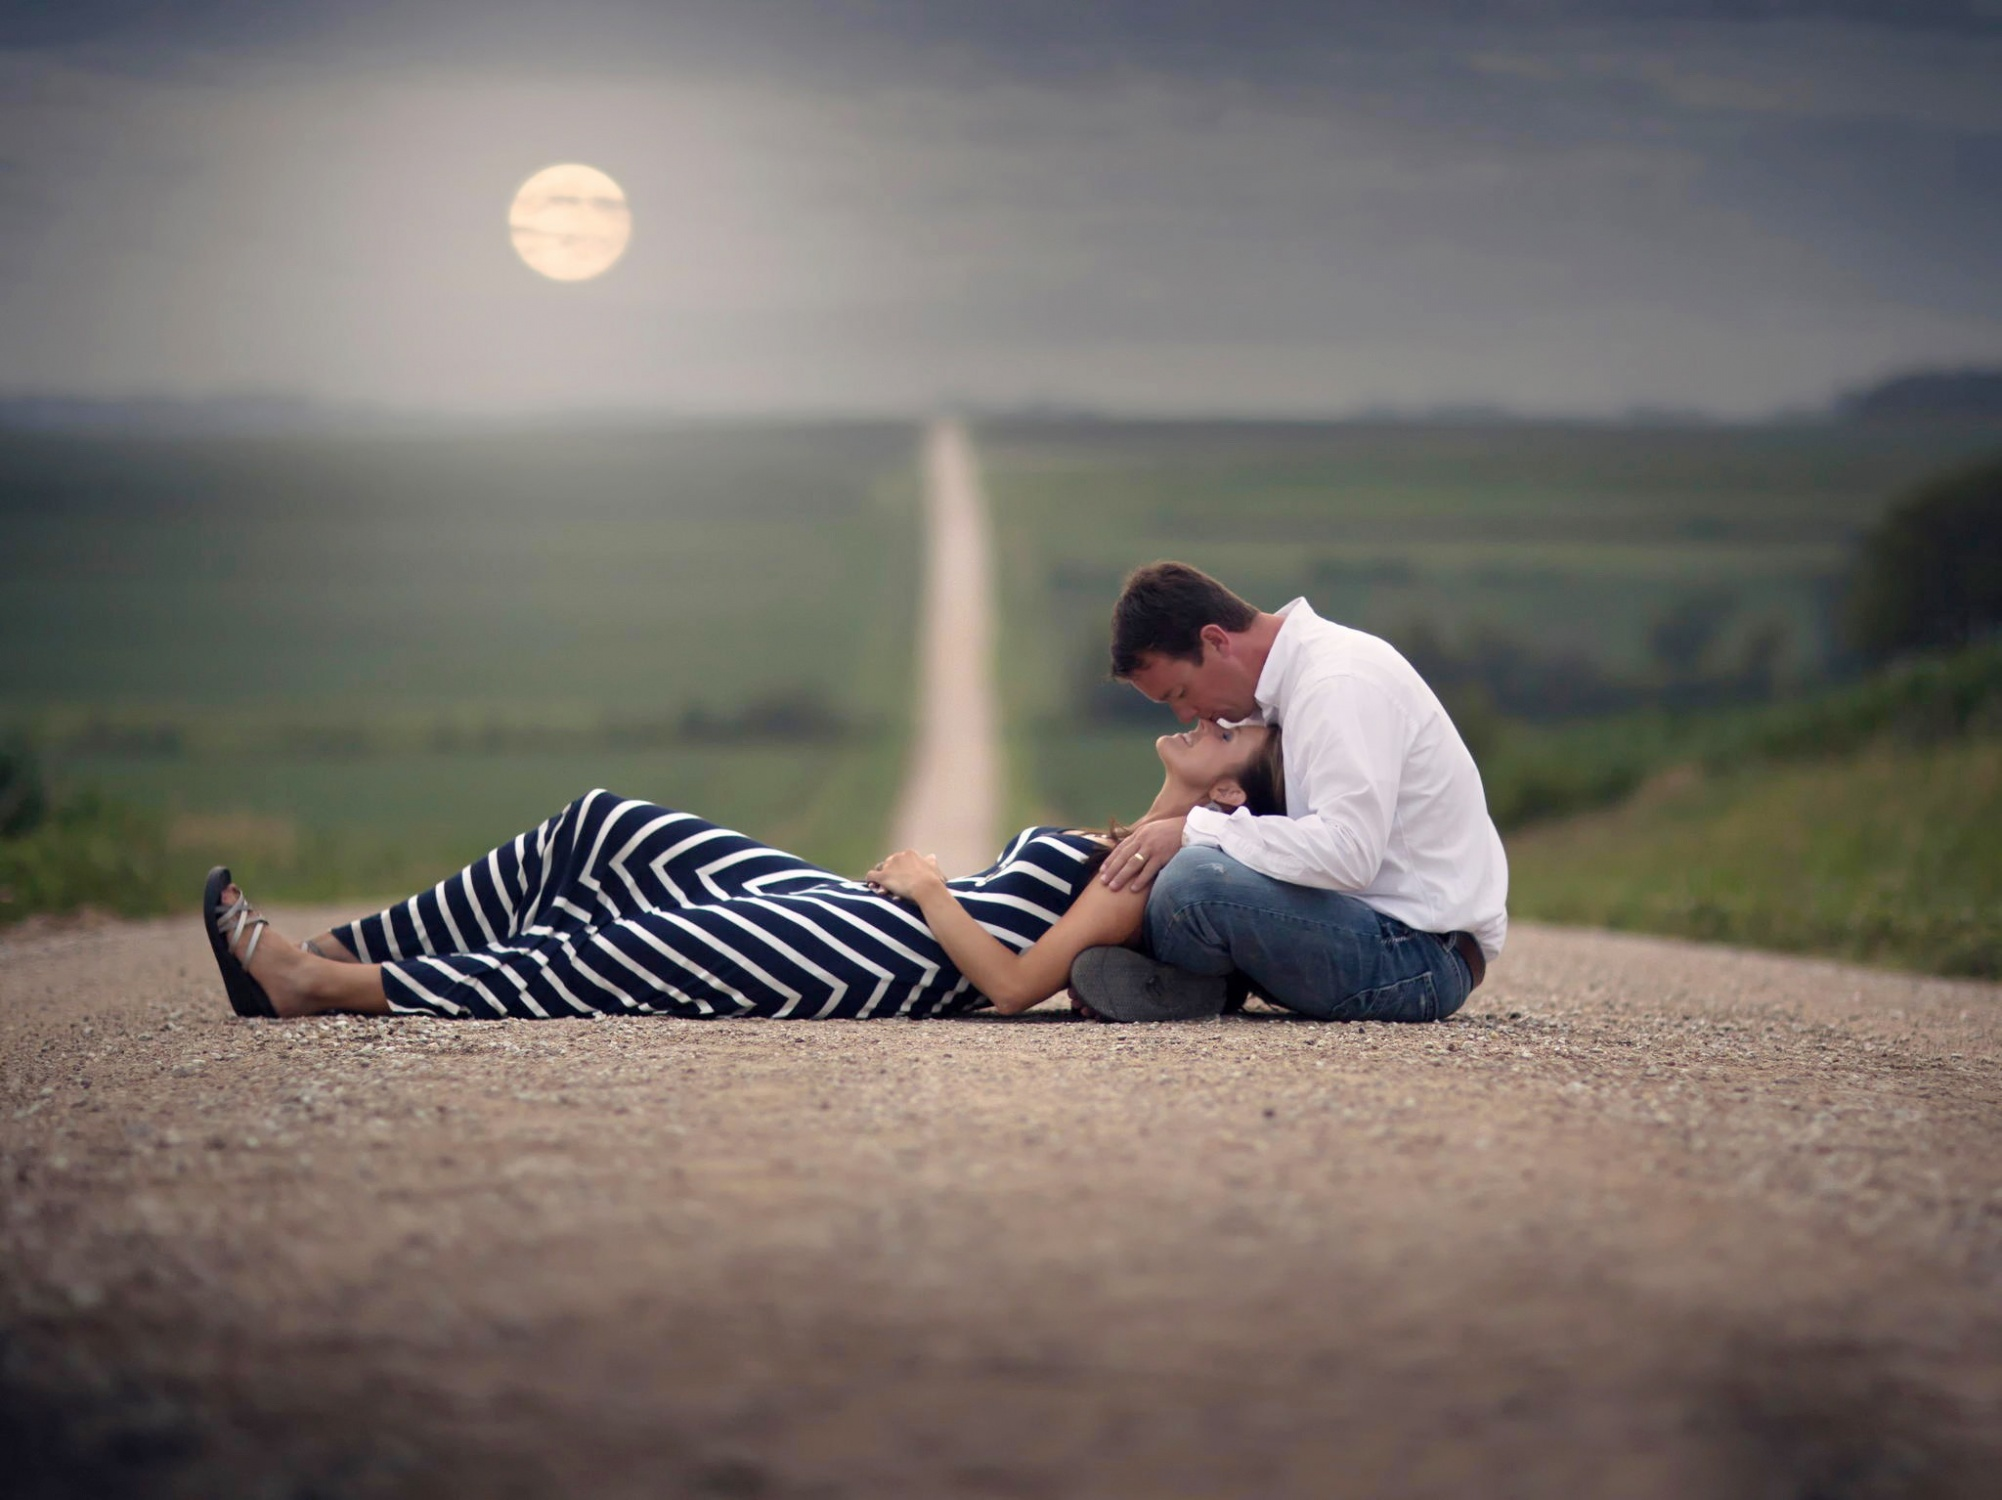 Romantic-love-couple-hd-wallpapers-kiss-road_small